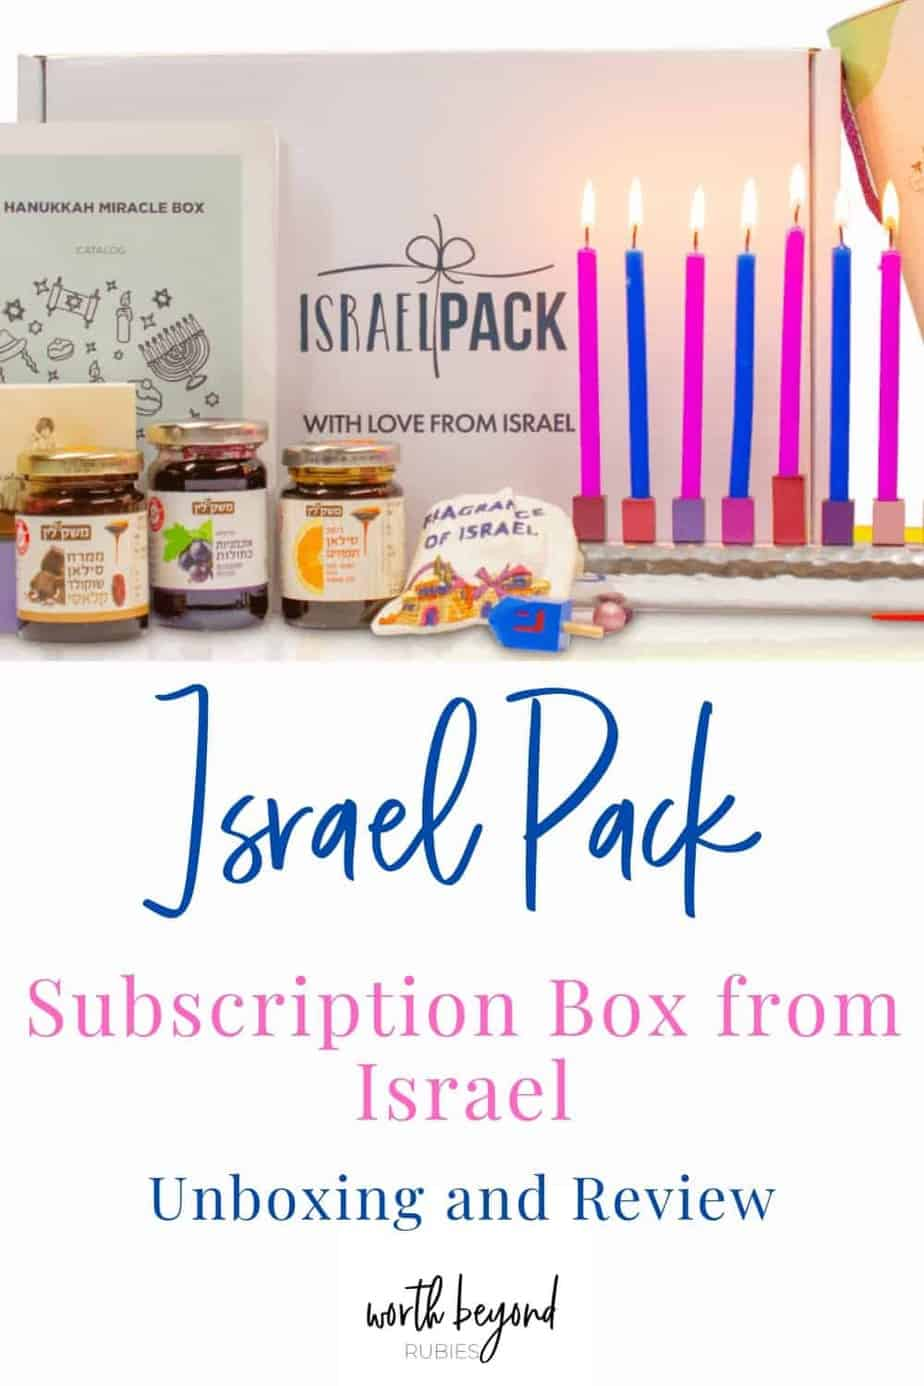 An image of the Israel Pack Subscription Box for November 2020 with a text overlay that says Israel Pack Subscription Box from Israel - Unboxing and Review